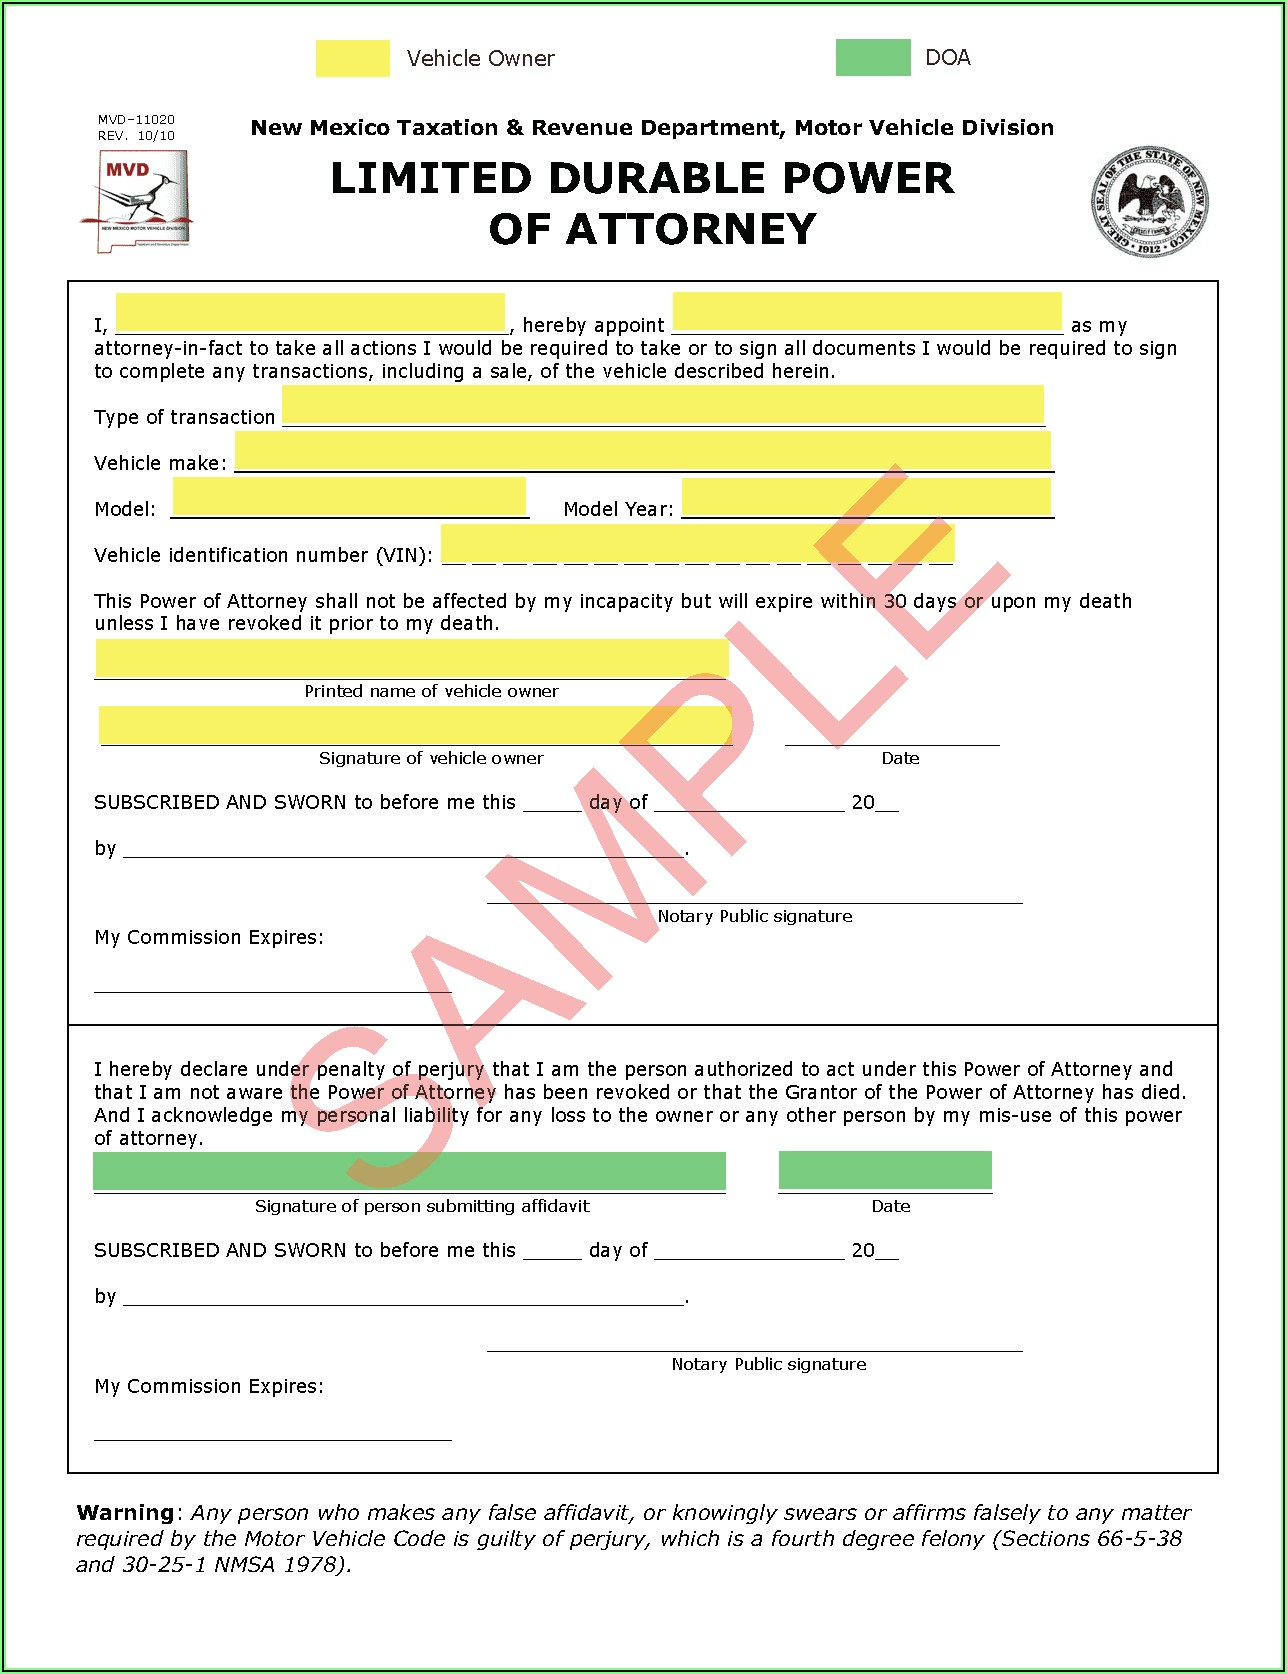 Where Can I Get A Blank Durable Power Of Attorney Form